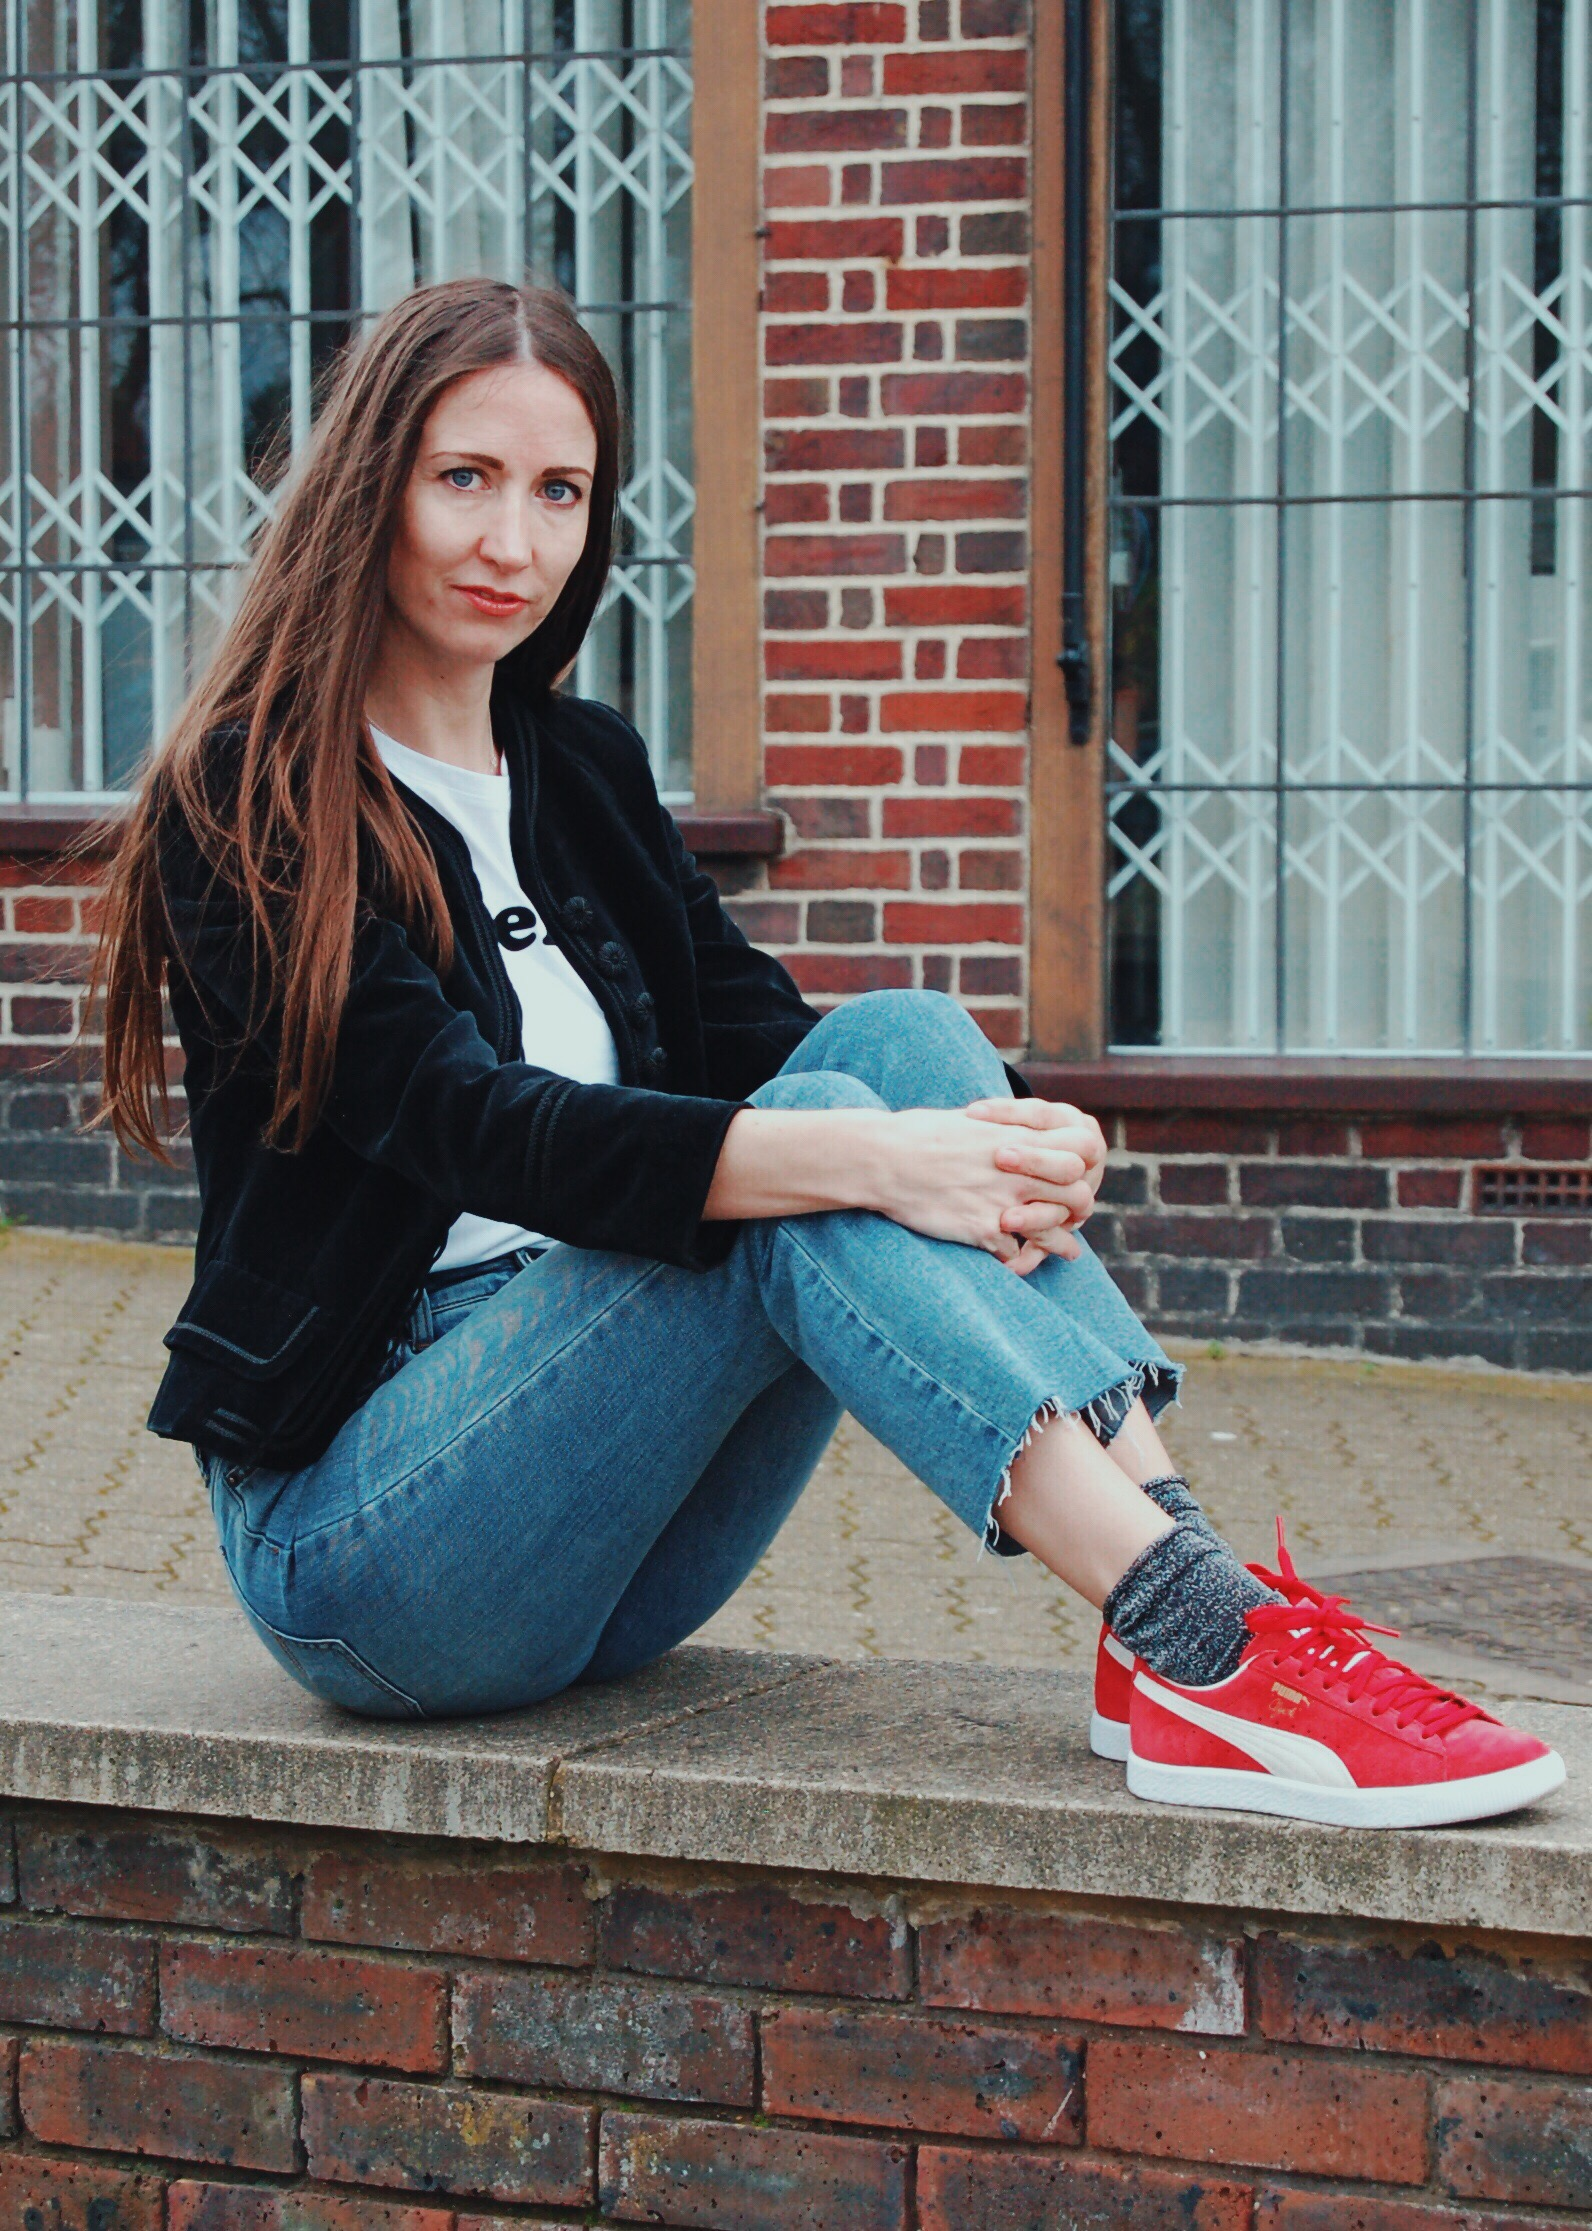 Natalie Wall in Puma Basket trainers